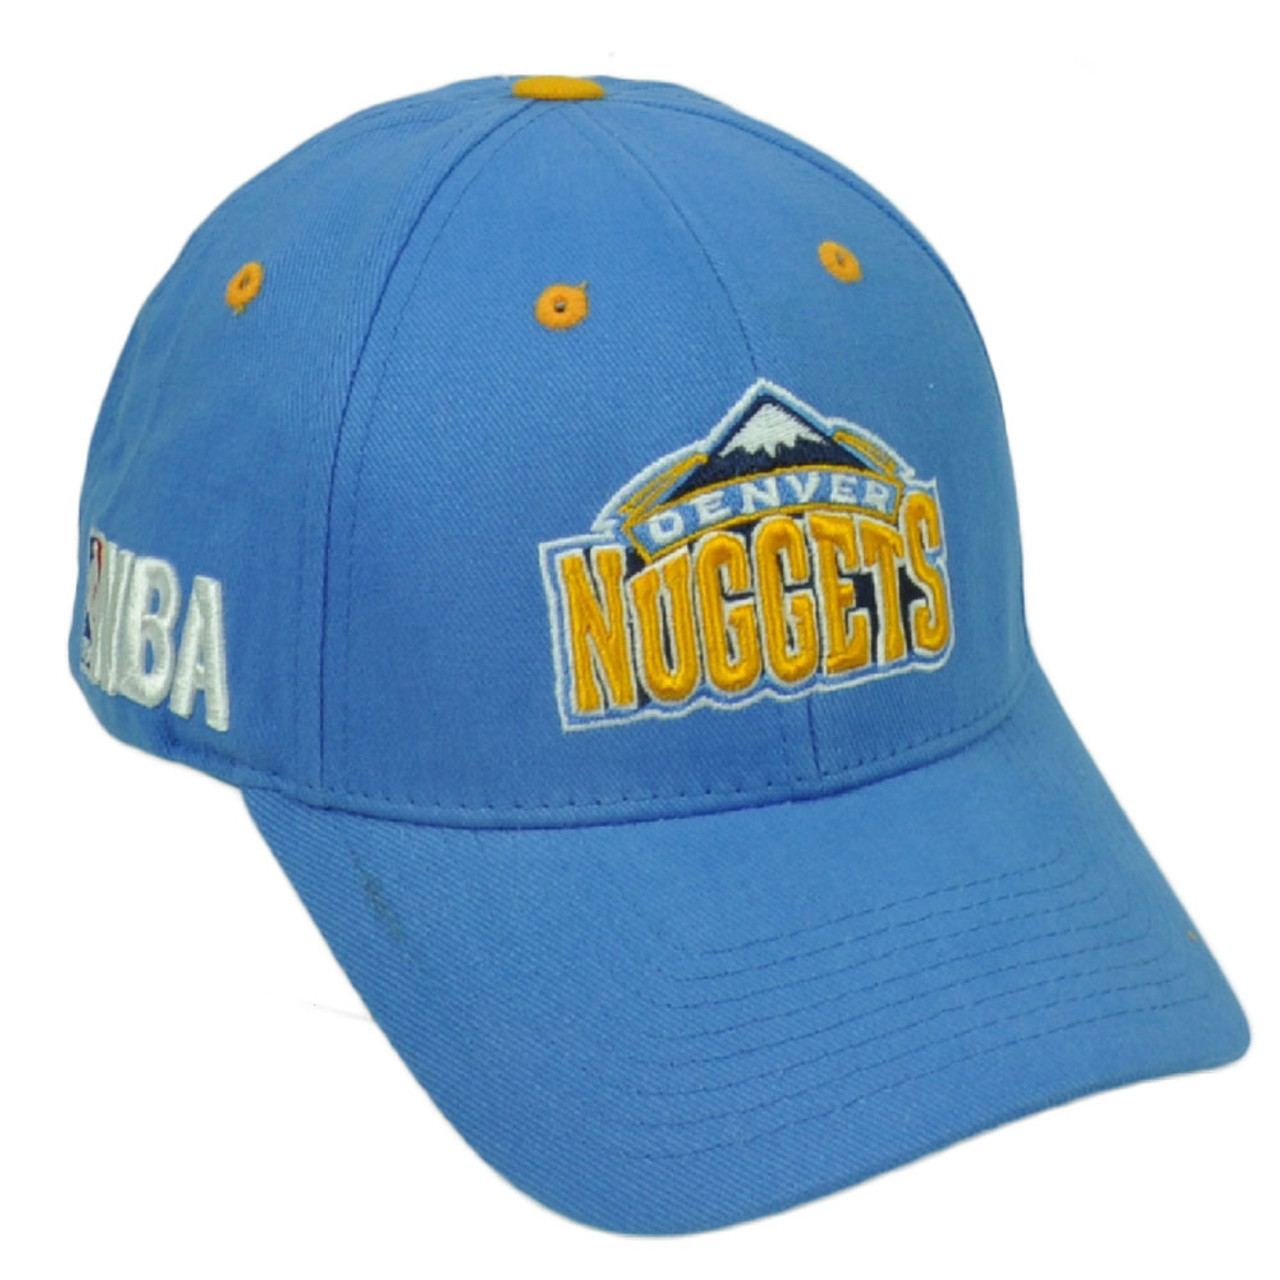 new concept 26597 53c93 Denver Nuggets Baby Blue Basketball Hat Cap Curved Bill Adjustable NBA  Yellow